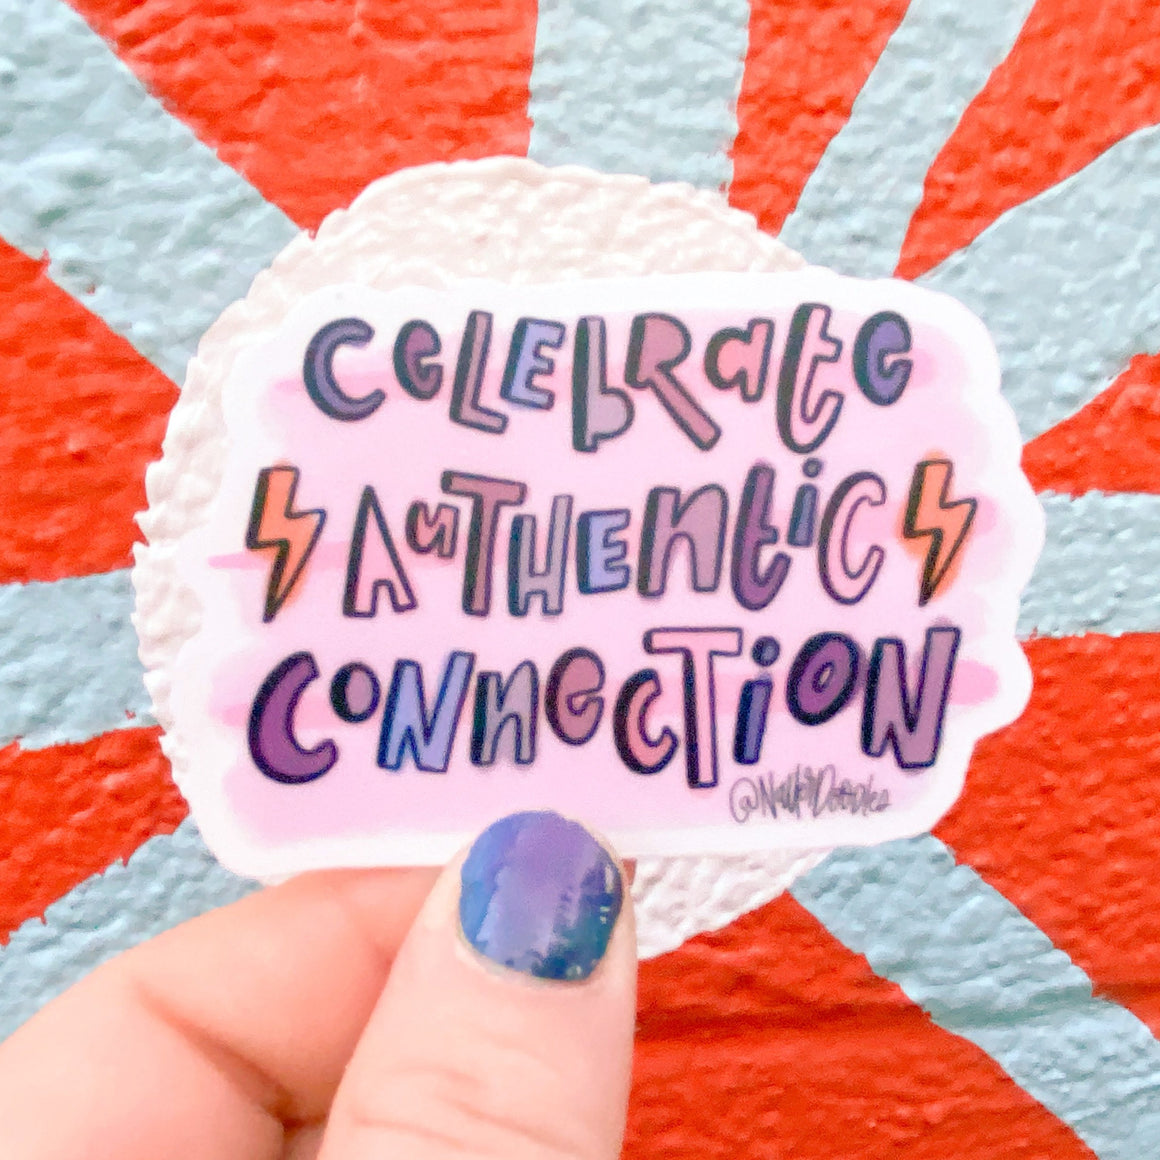 Celebrate Authentic Connection